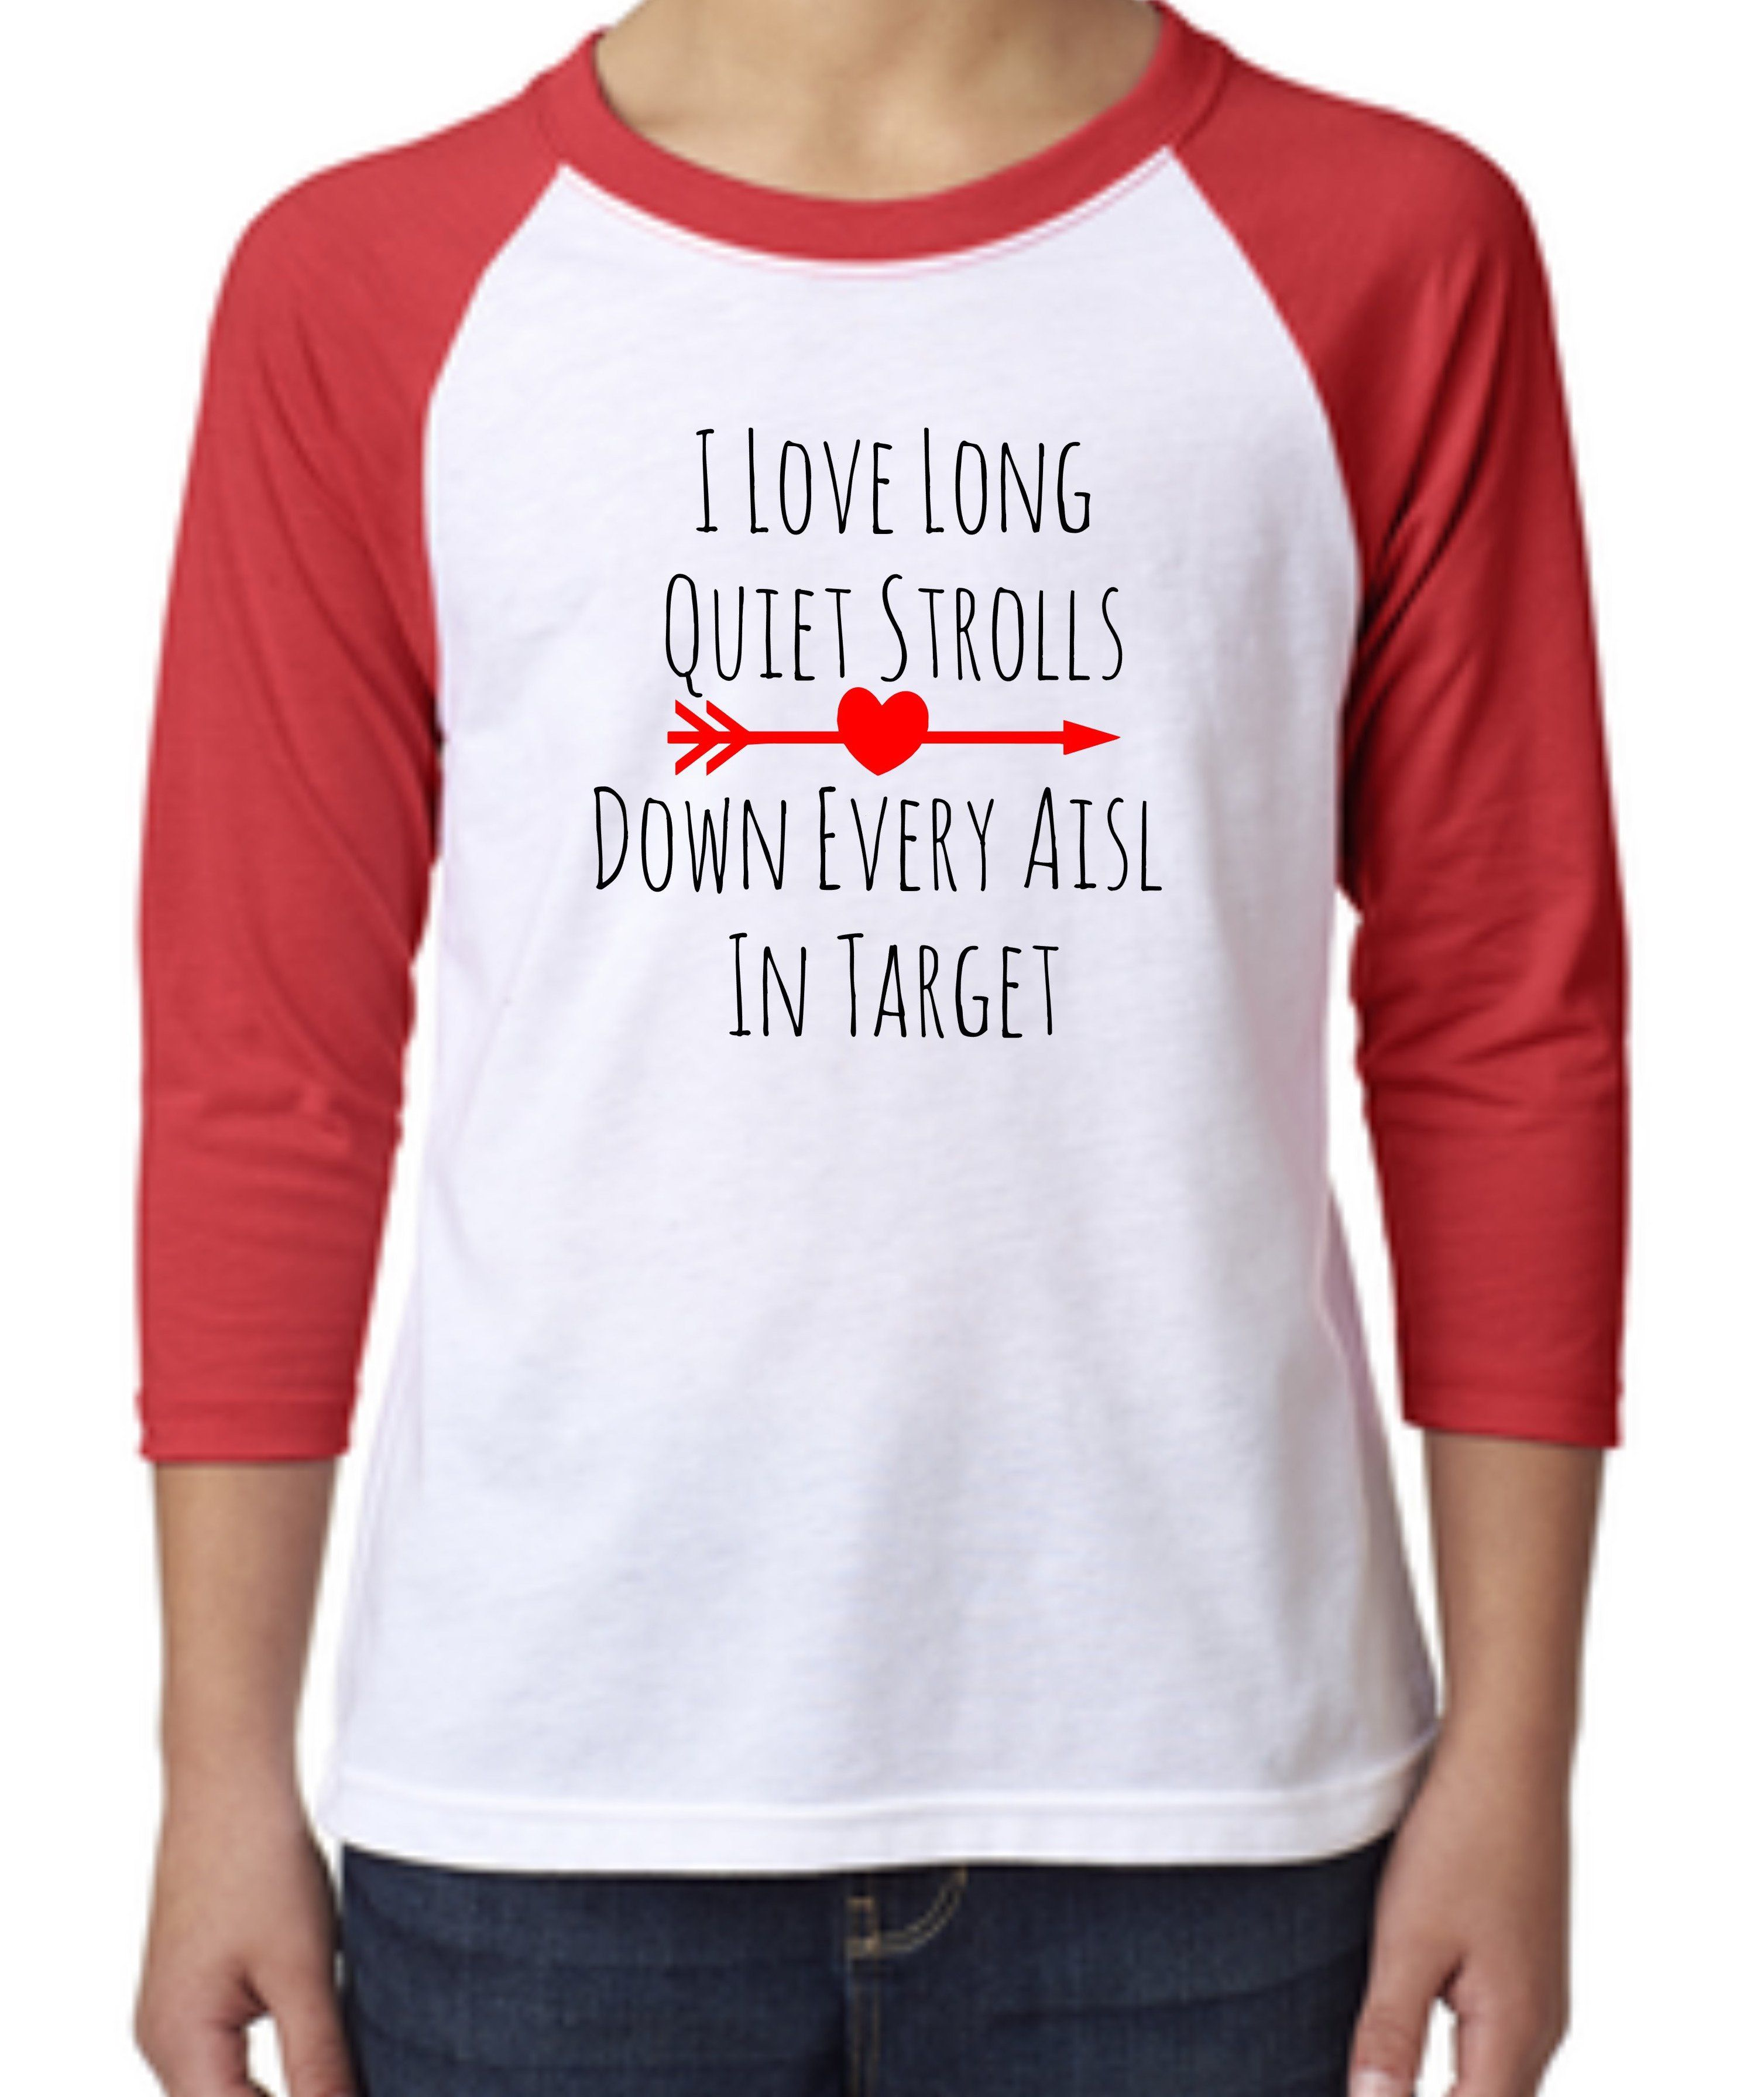 Aisl Shooting i love long quiet strolls down every aisle in target infant